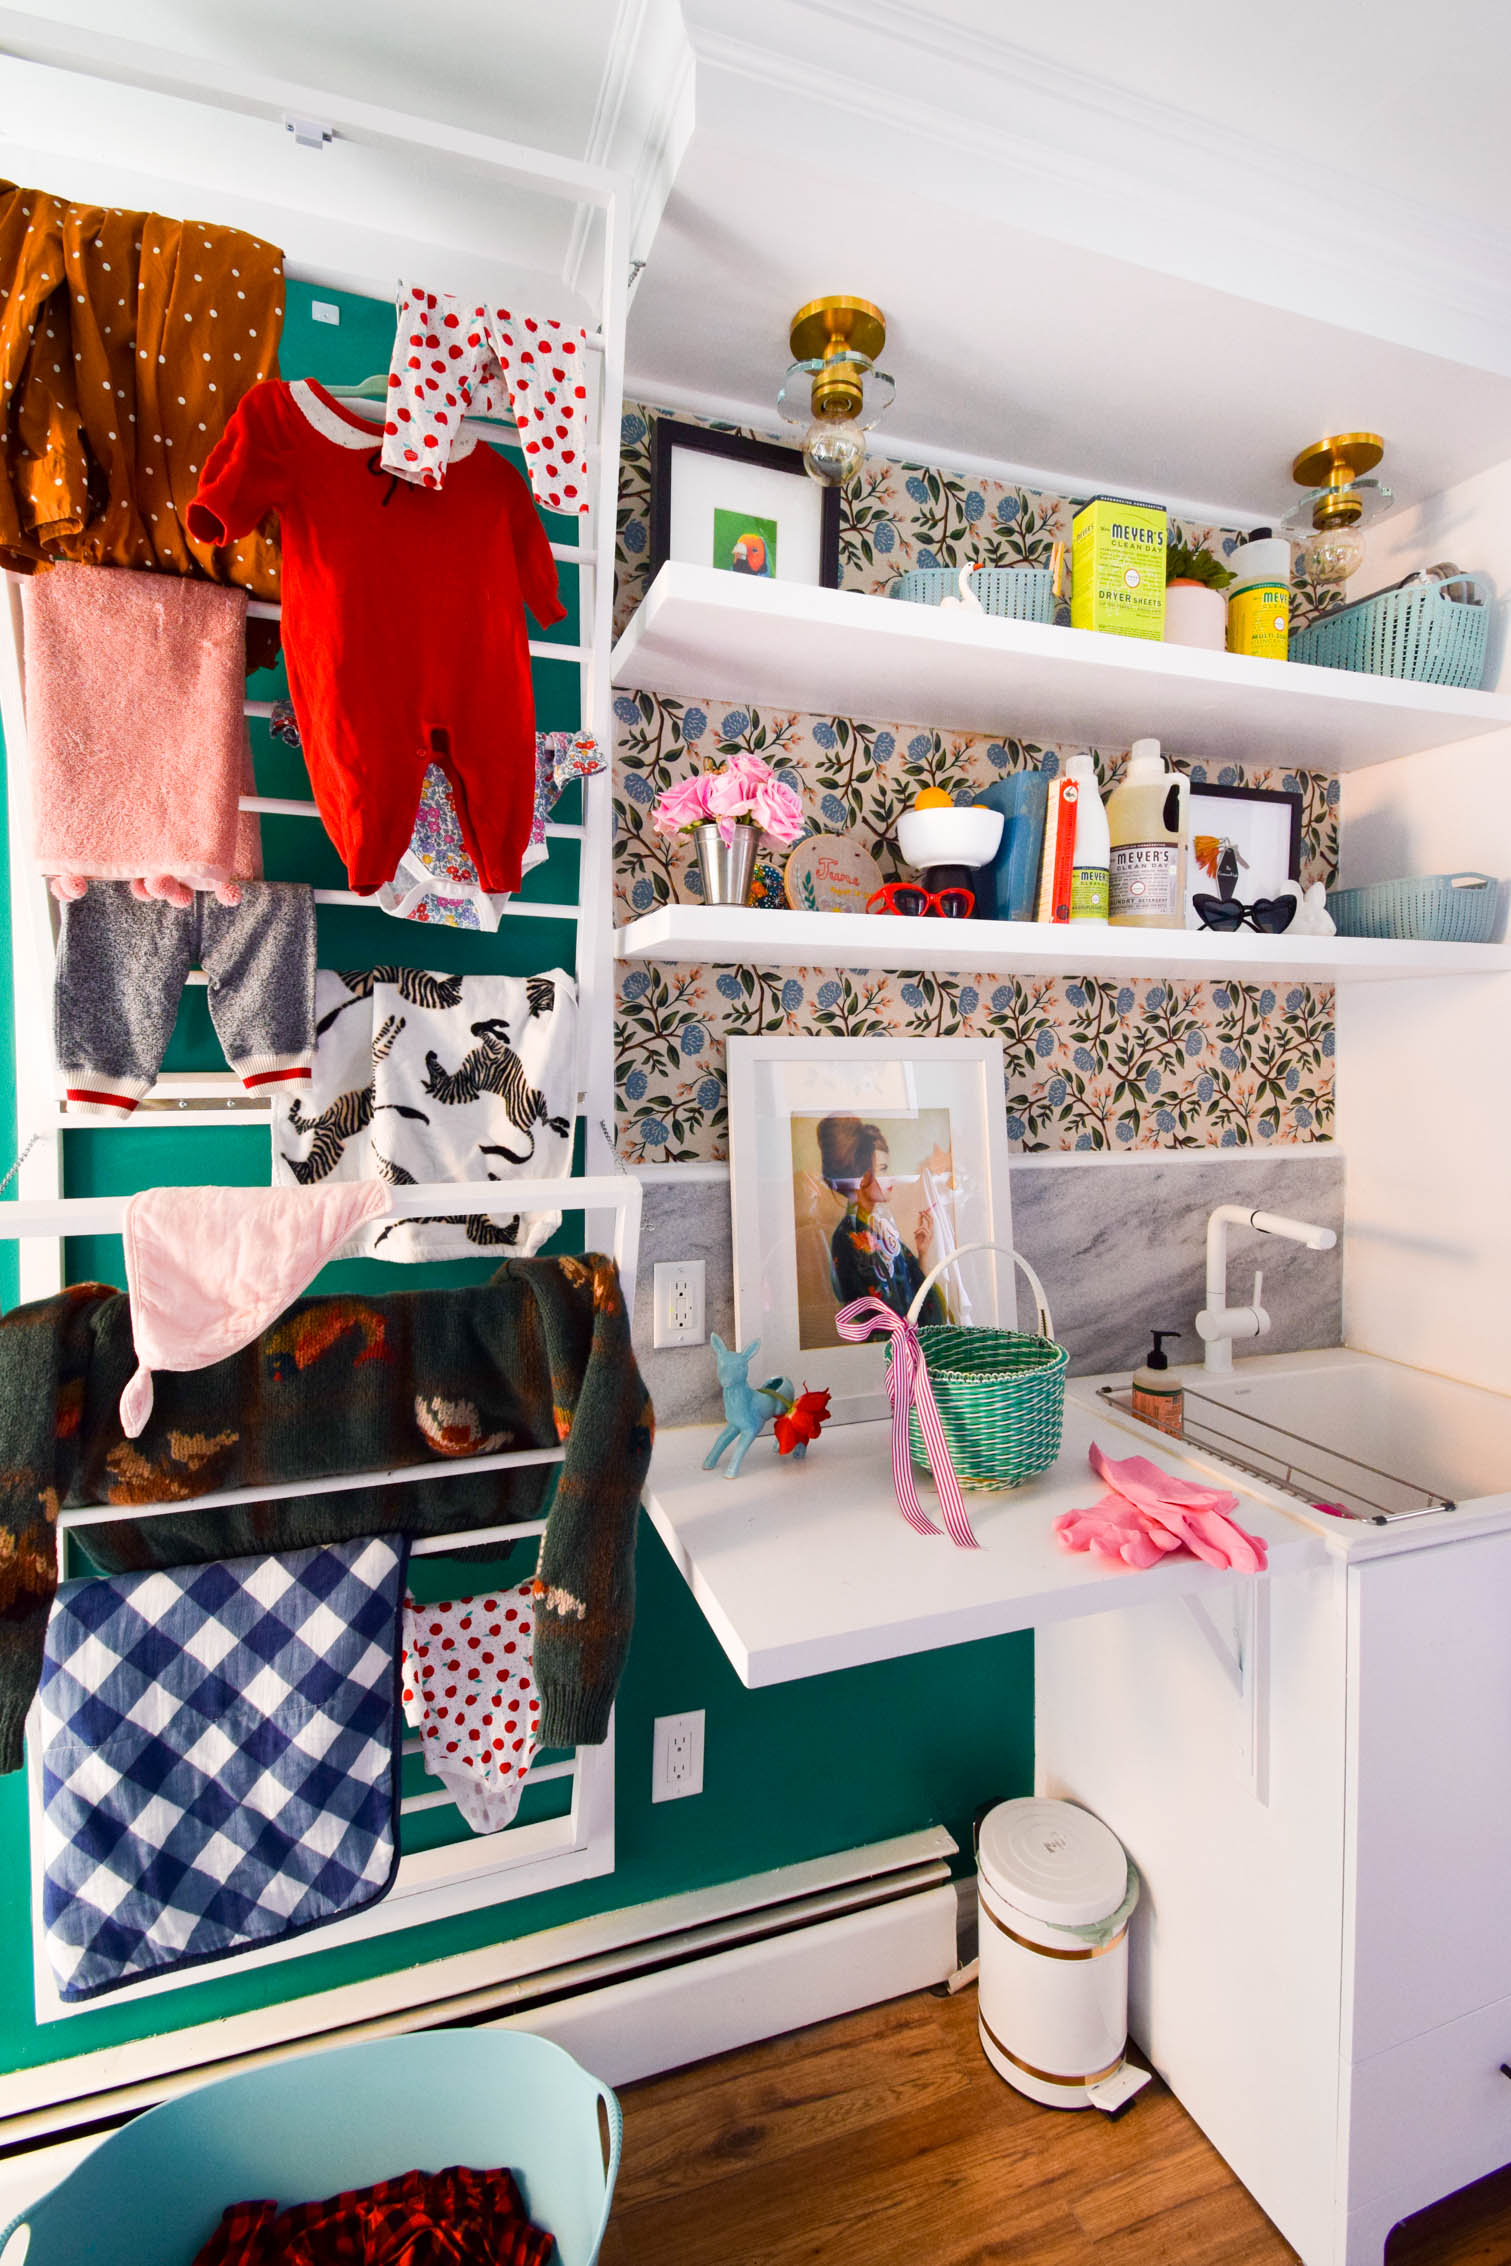 This shared mud room and colorful vintage laundry room, is the perfect antidote to the boring white spaces. Life is colorful, and so are these spaces.